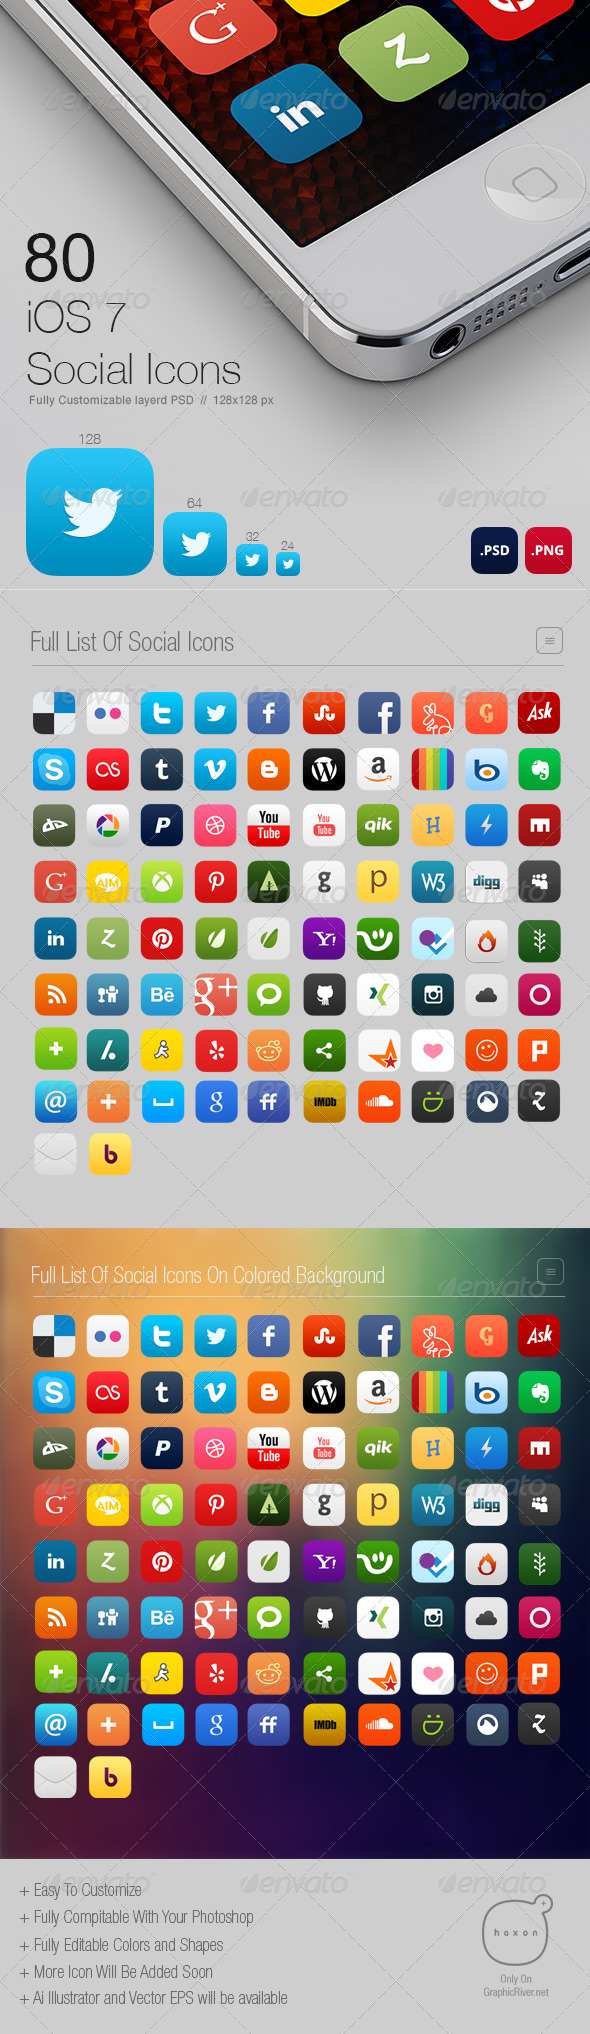 GraphicRiver 80 Social Icons iOS7 Style 5001972